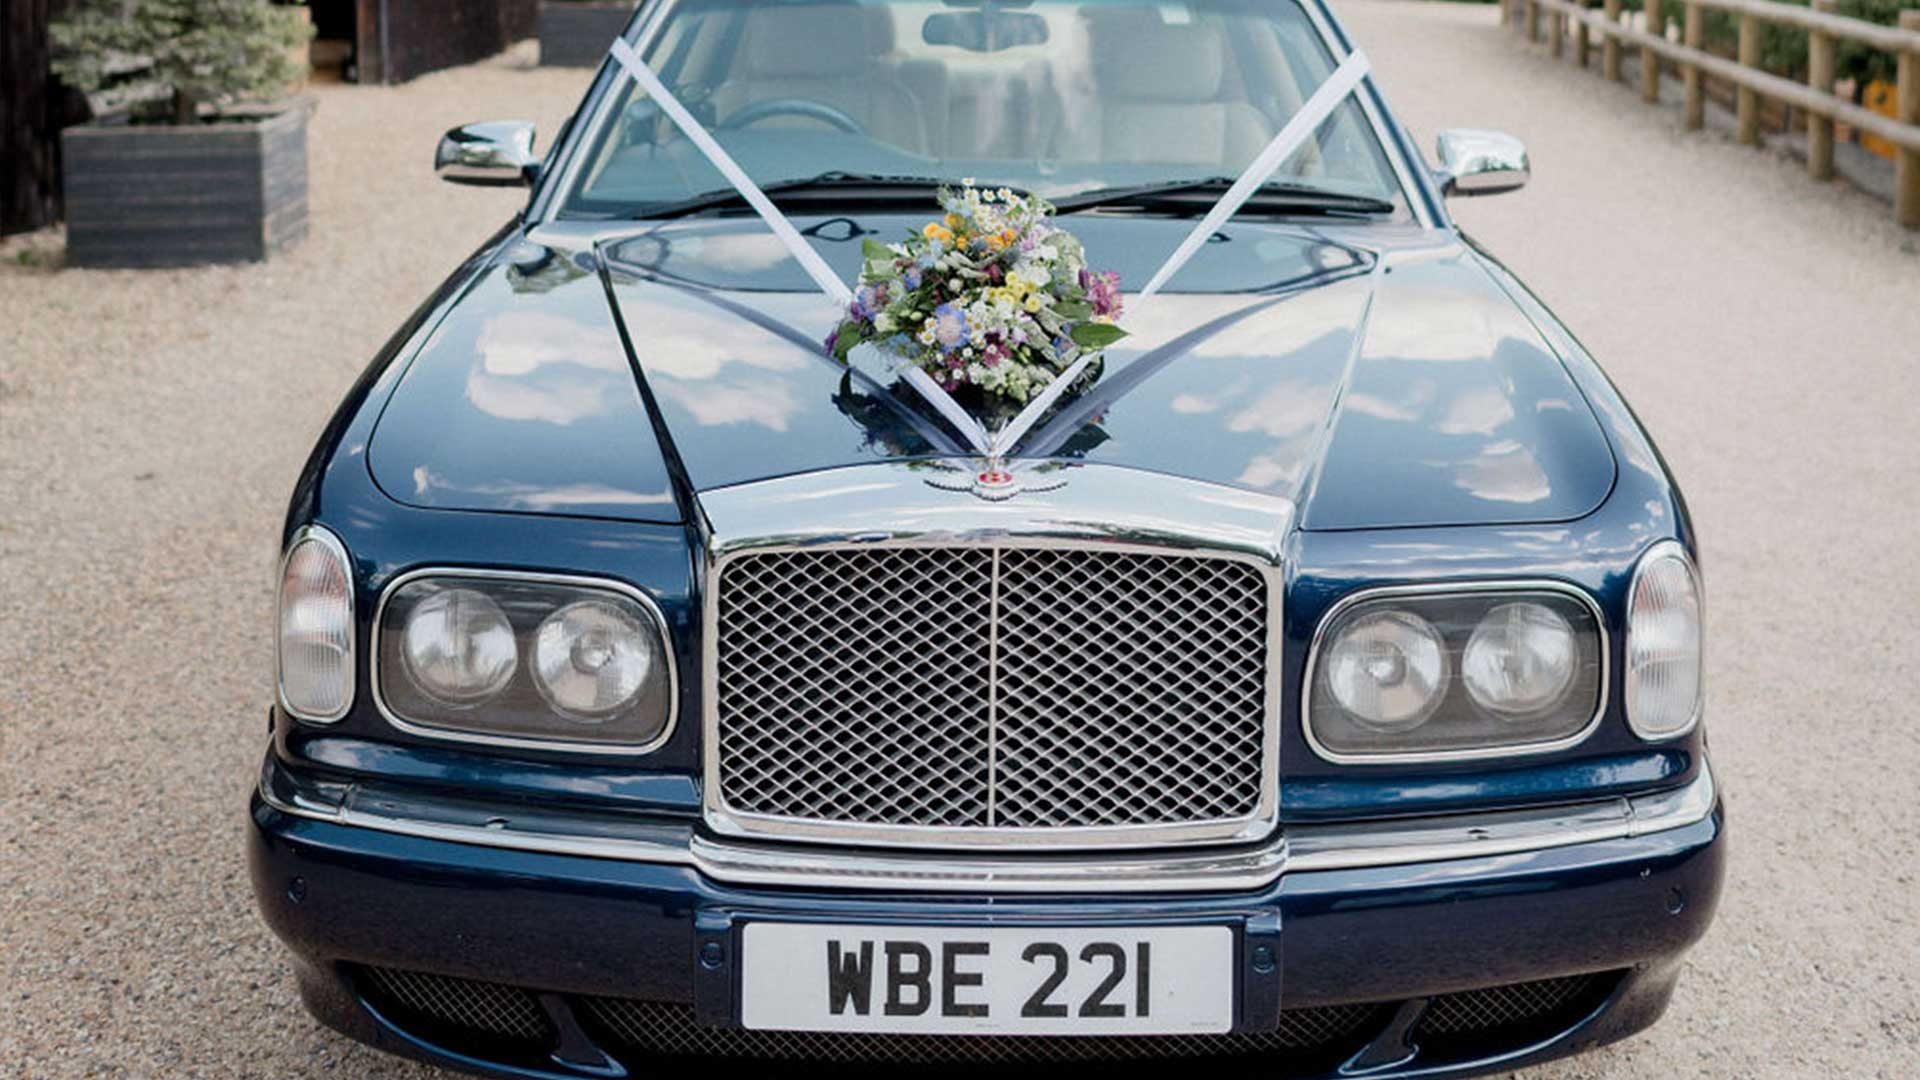 The Bentley Arnage wedding car in Blue